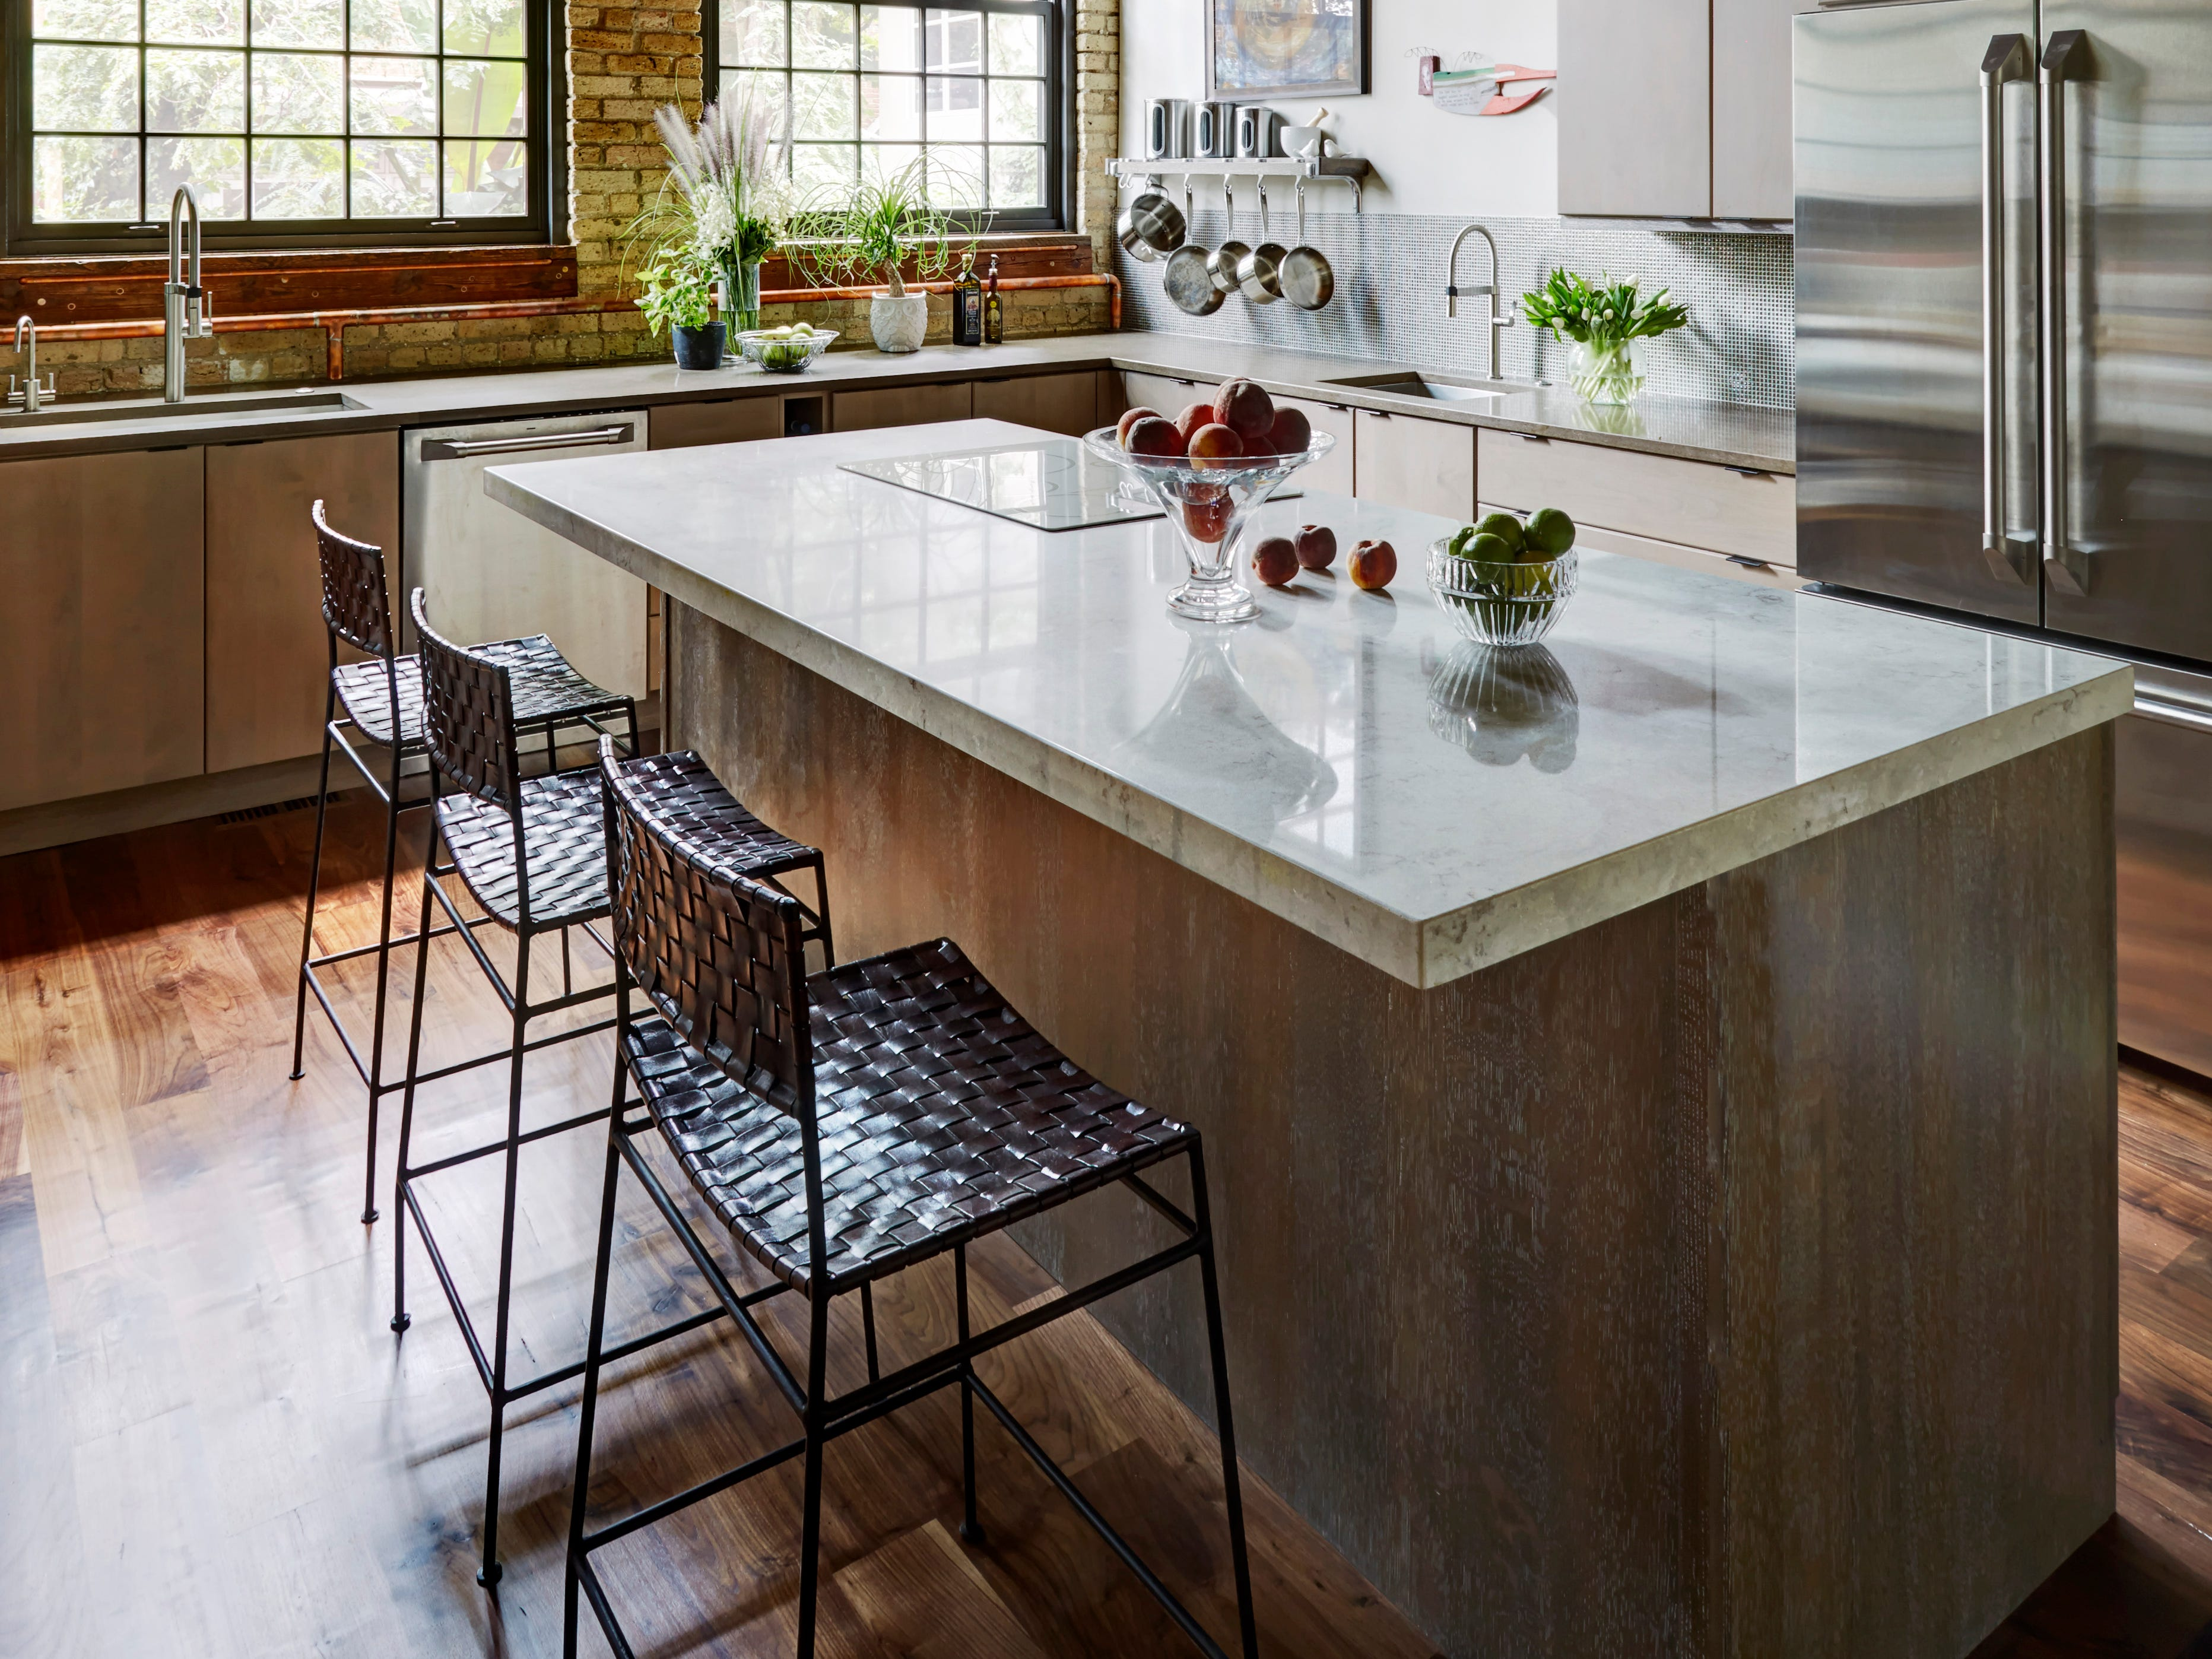 When a former Chicago banjo factory was renovated a large island was added. It was topped with Caesarstone quartz and is now the centerpiece of the kitchen. (FMA Interior Design)